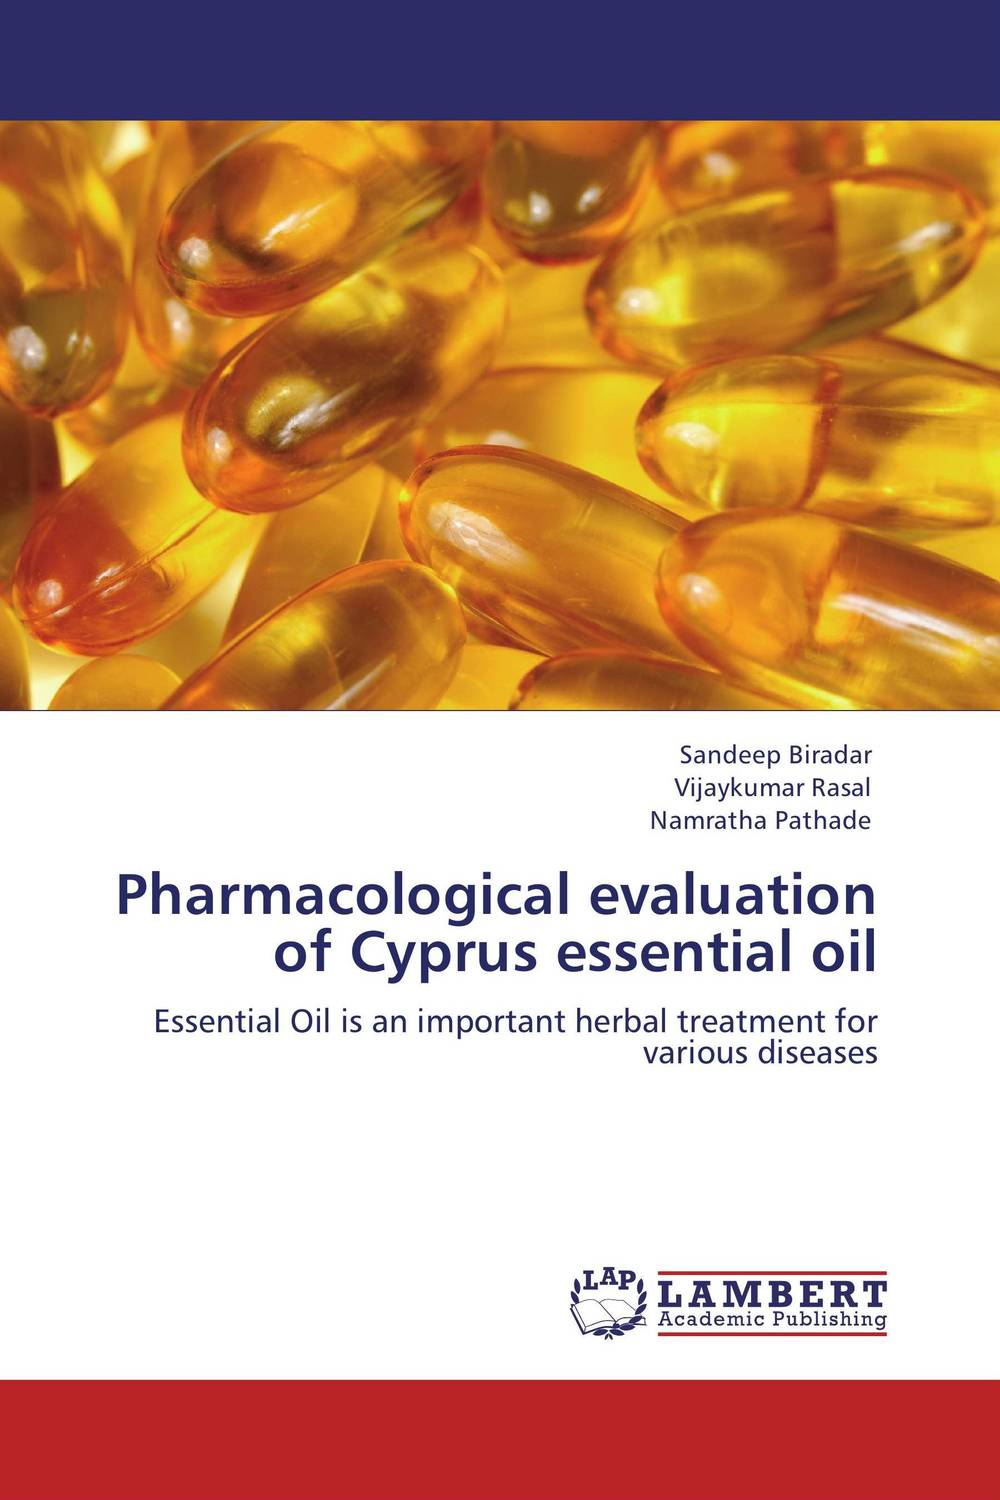 Pharmacological evaluation of Cyprus essential oil role of rosuvastatin in segmentalbone healing